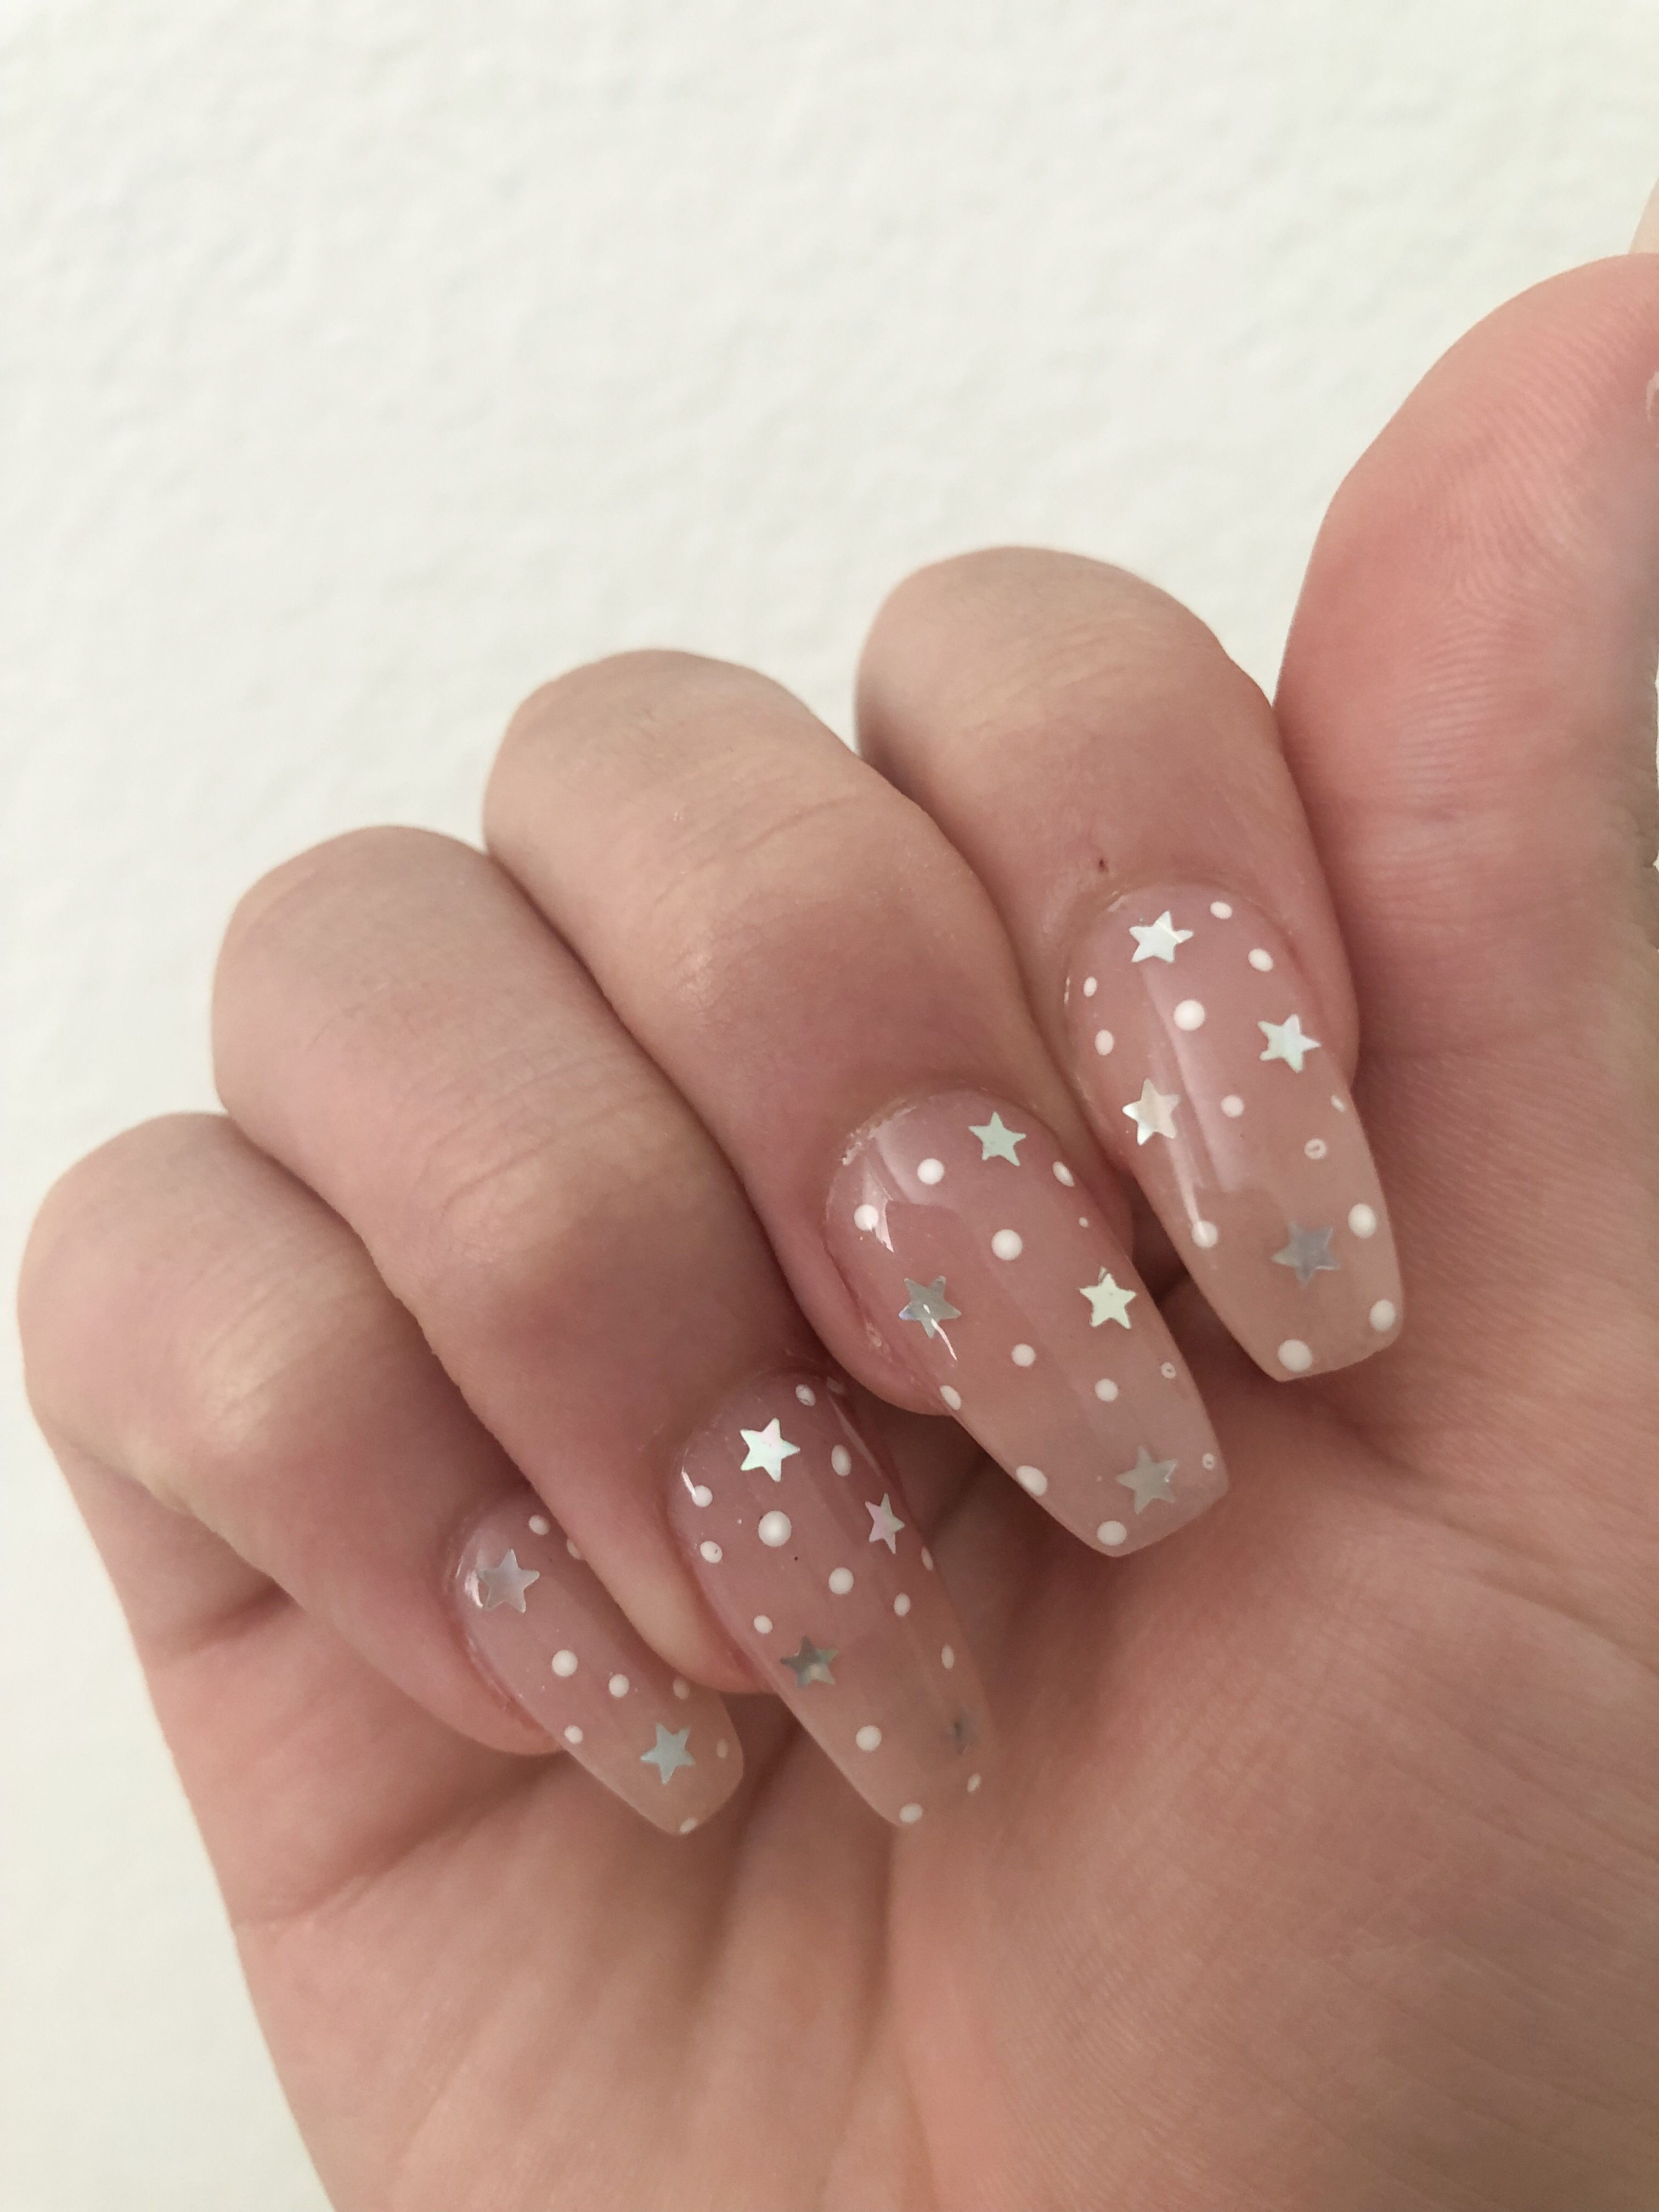 Designing Your Fingernails Or Toenails Is Lots Of Fun It Can Make A Fashion Statement Look At The Late Star Nail Designs Cute Acrylic Nails Holographic Nails